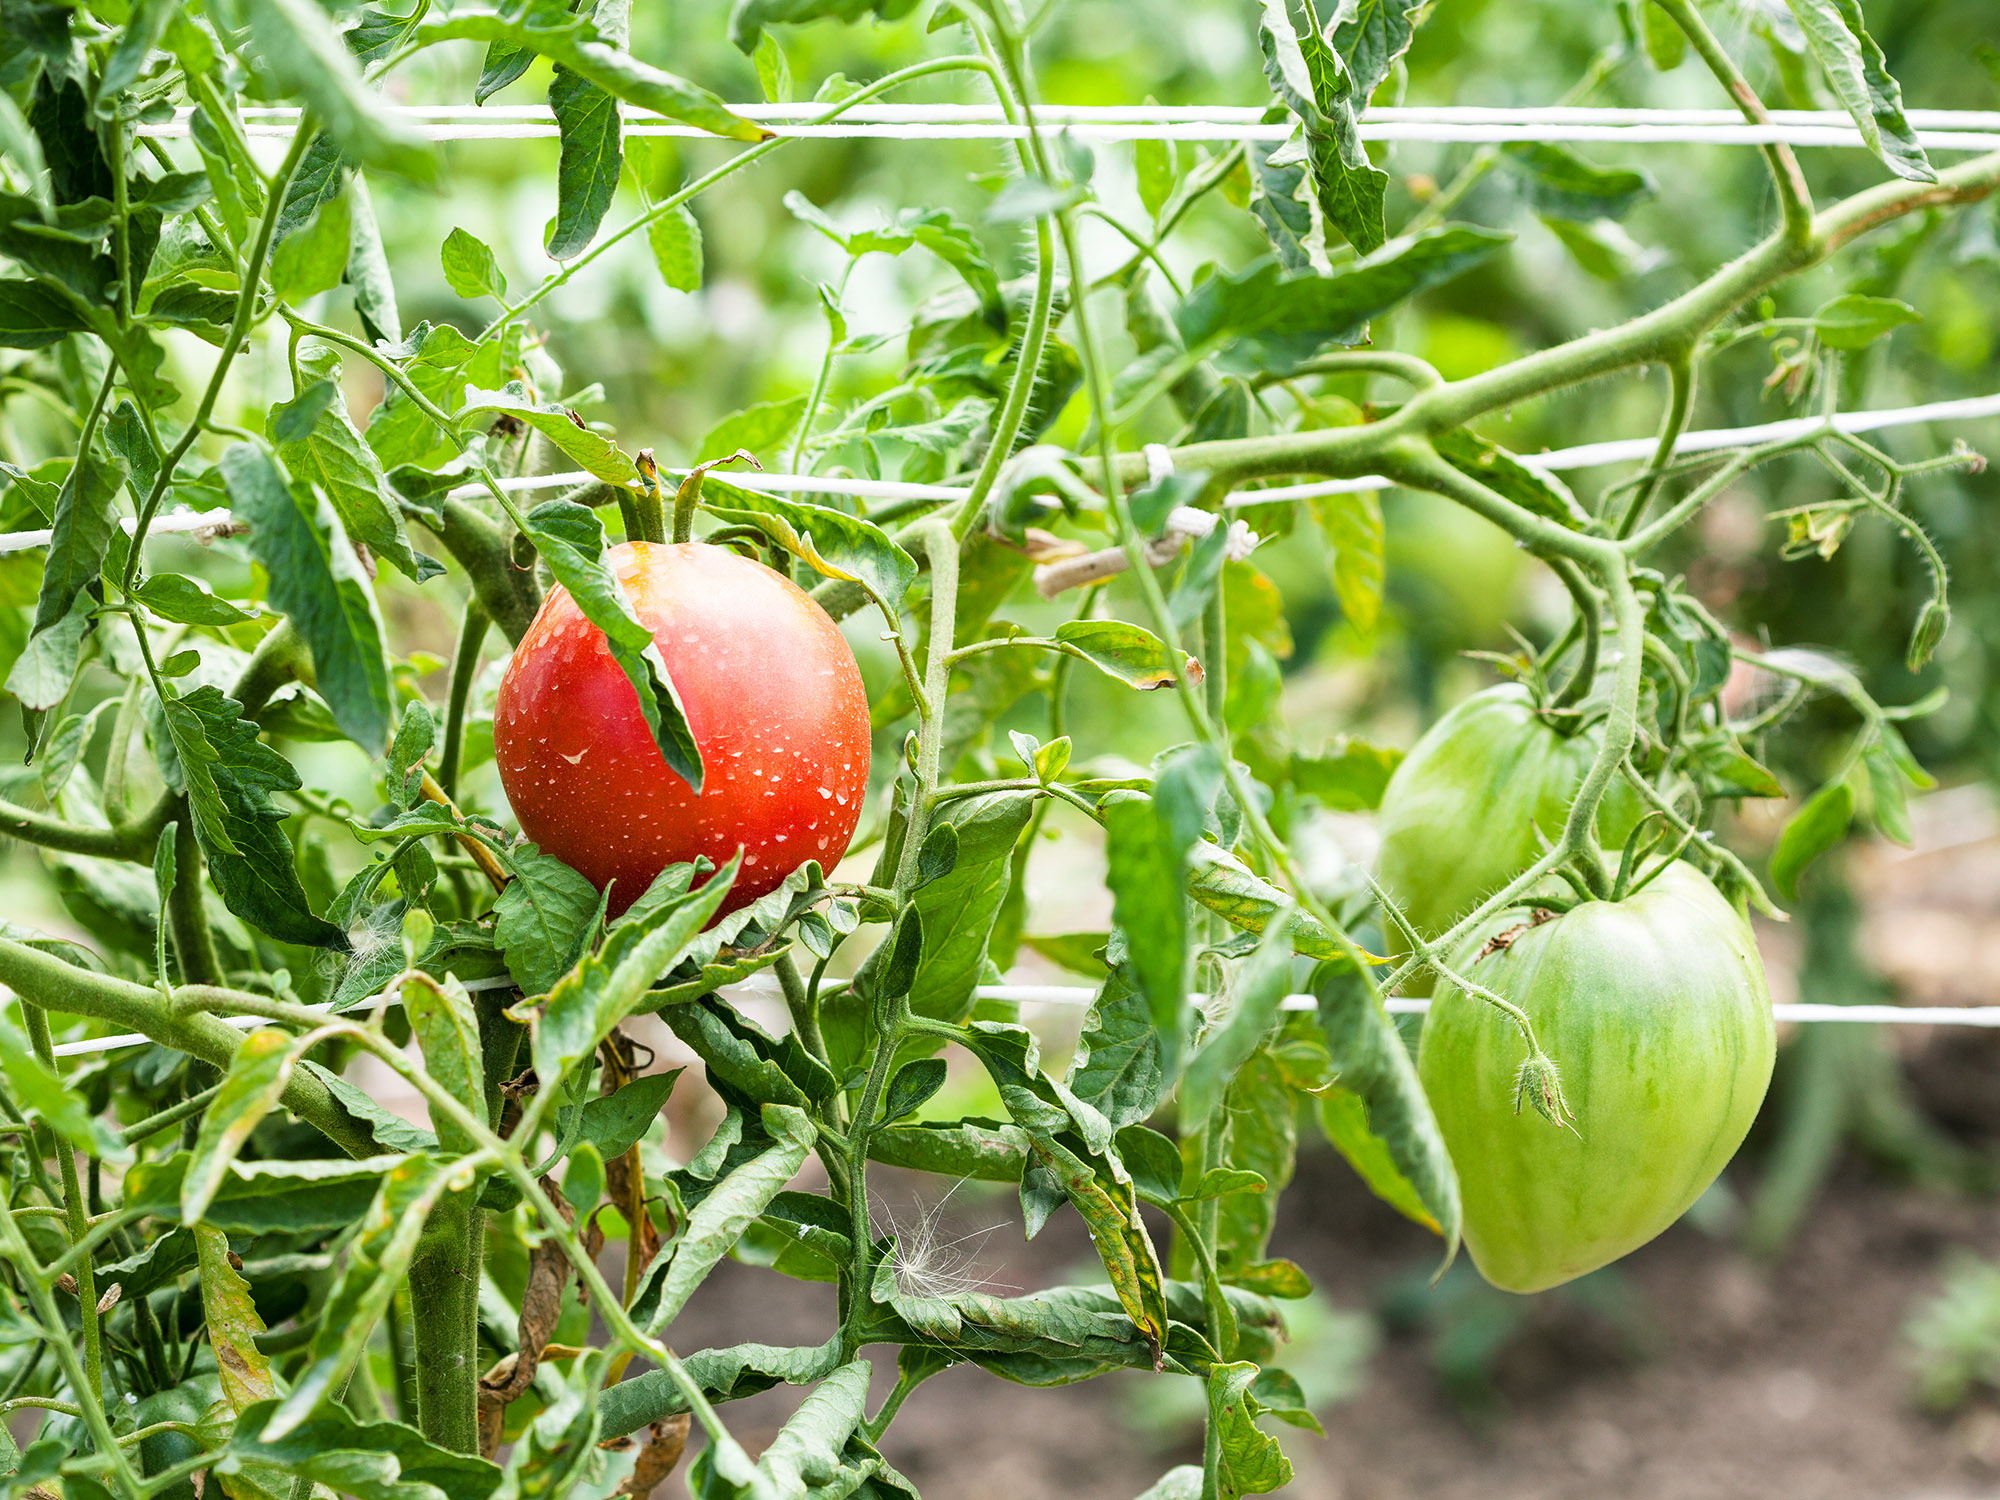 bushes with tomato fruits on ropes in garden